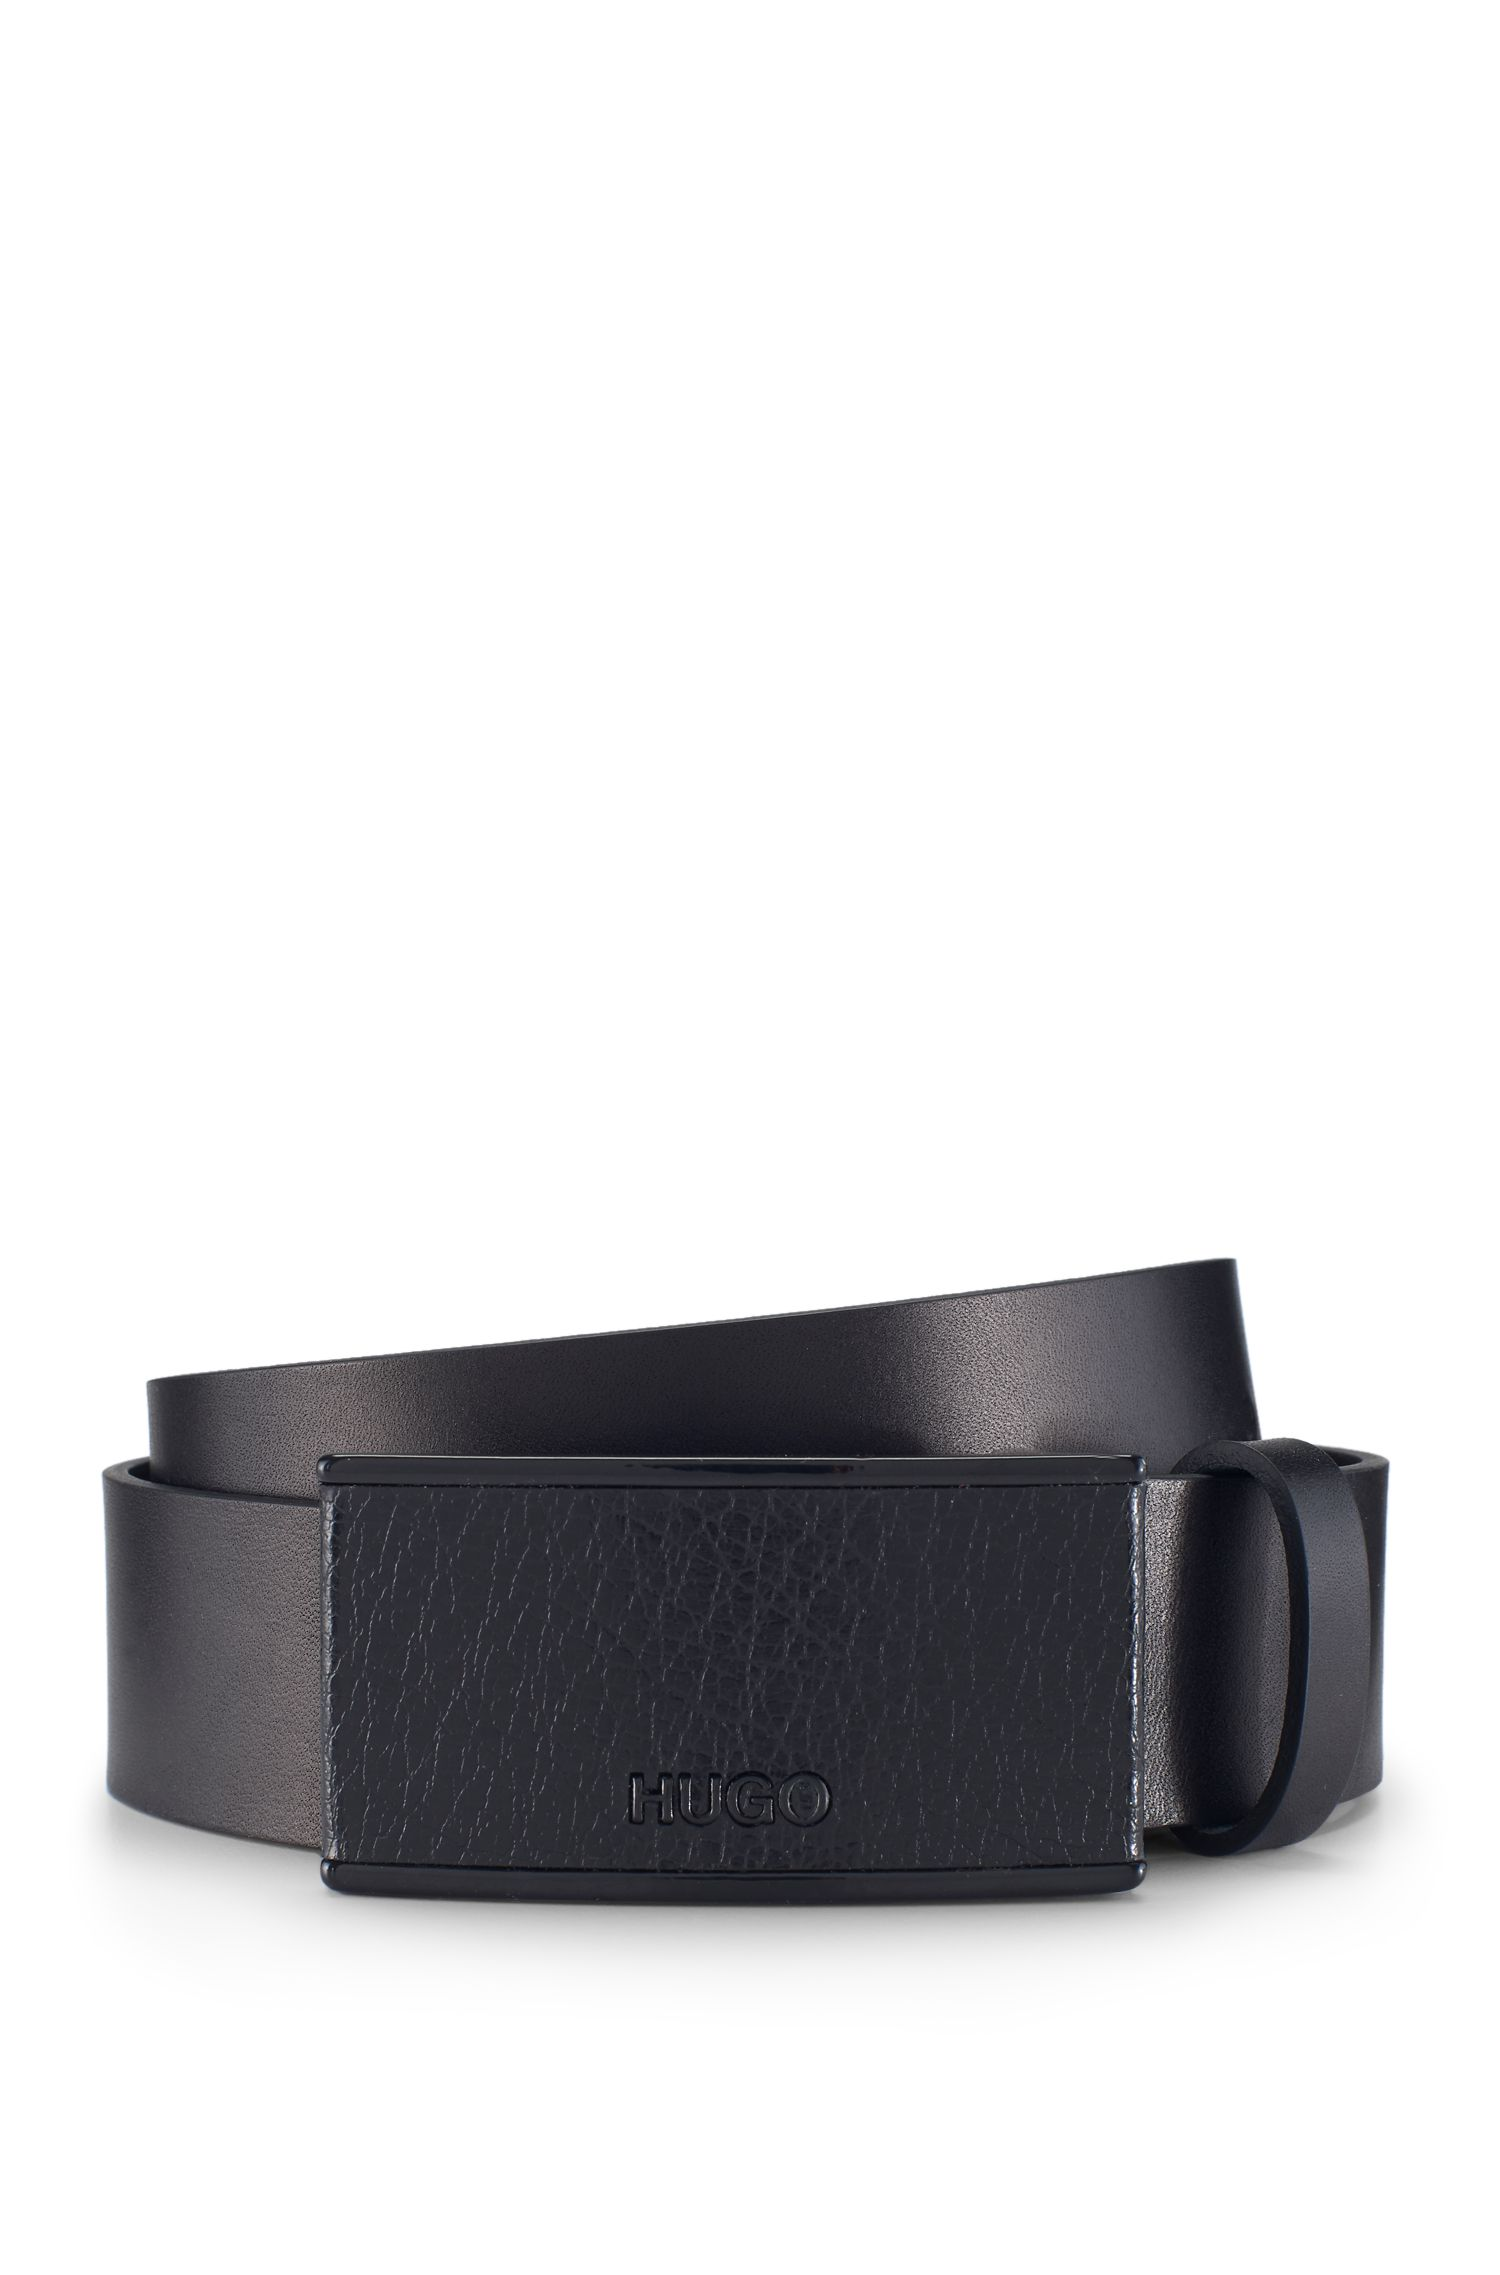 Leather Belt | Gerdy